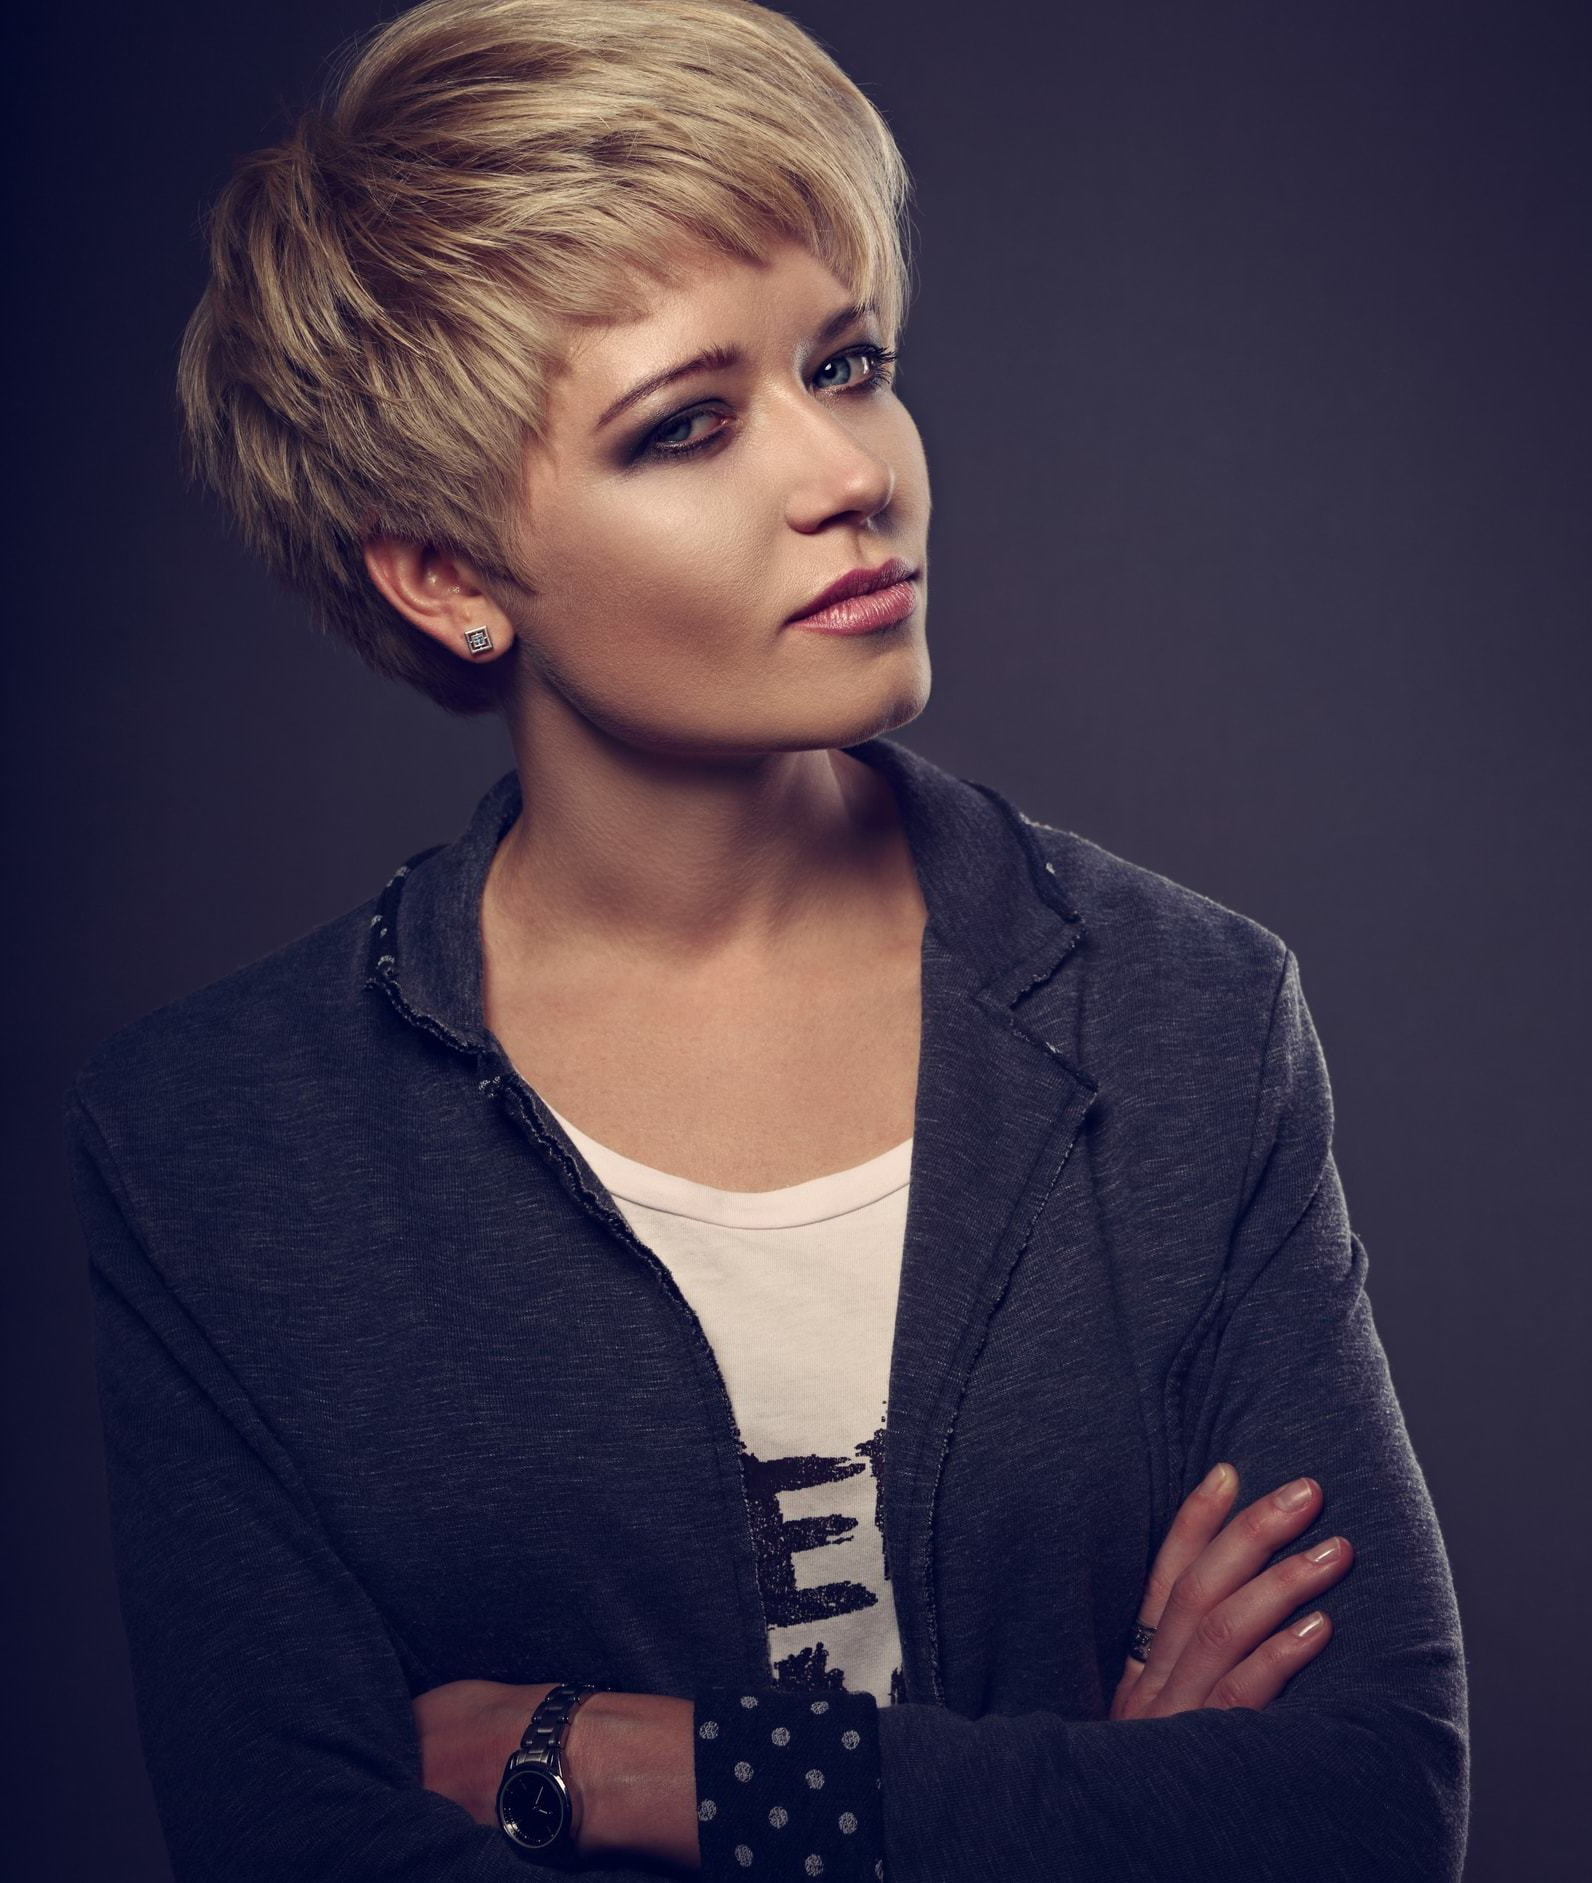 Livin' The Short Life: 20 Short Haircuts For Round Faces Inside Cropped Pixie Haircuts For A Round Face (View 18 of 20)